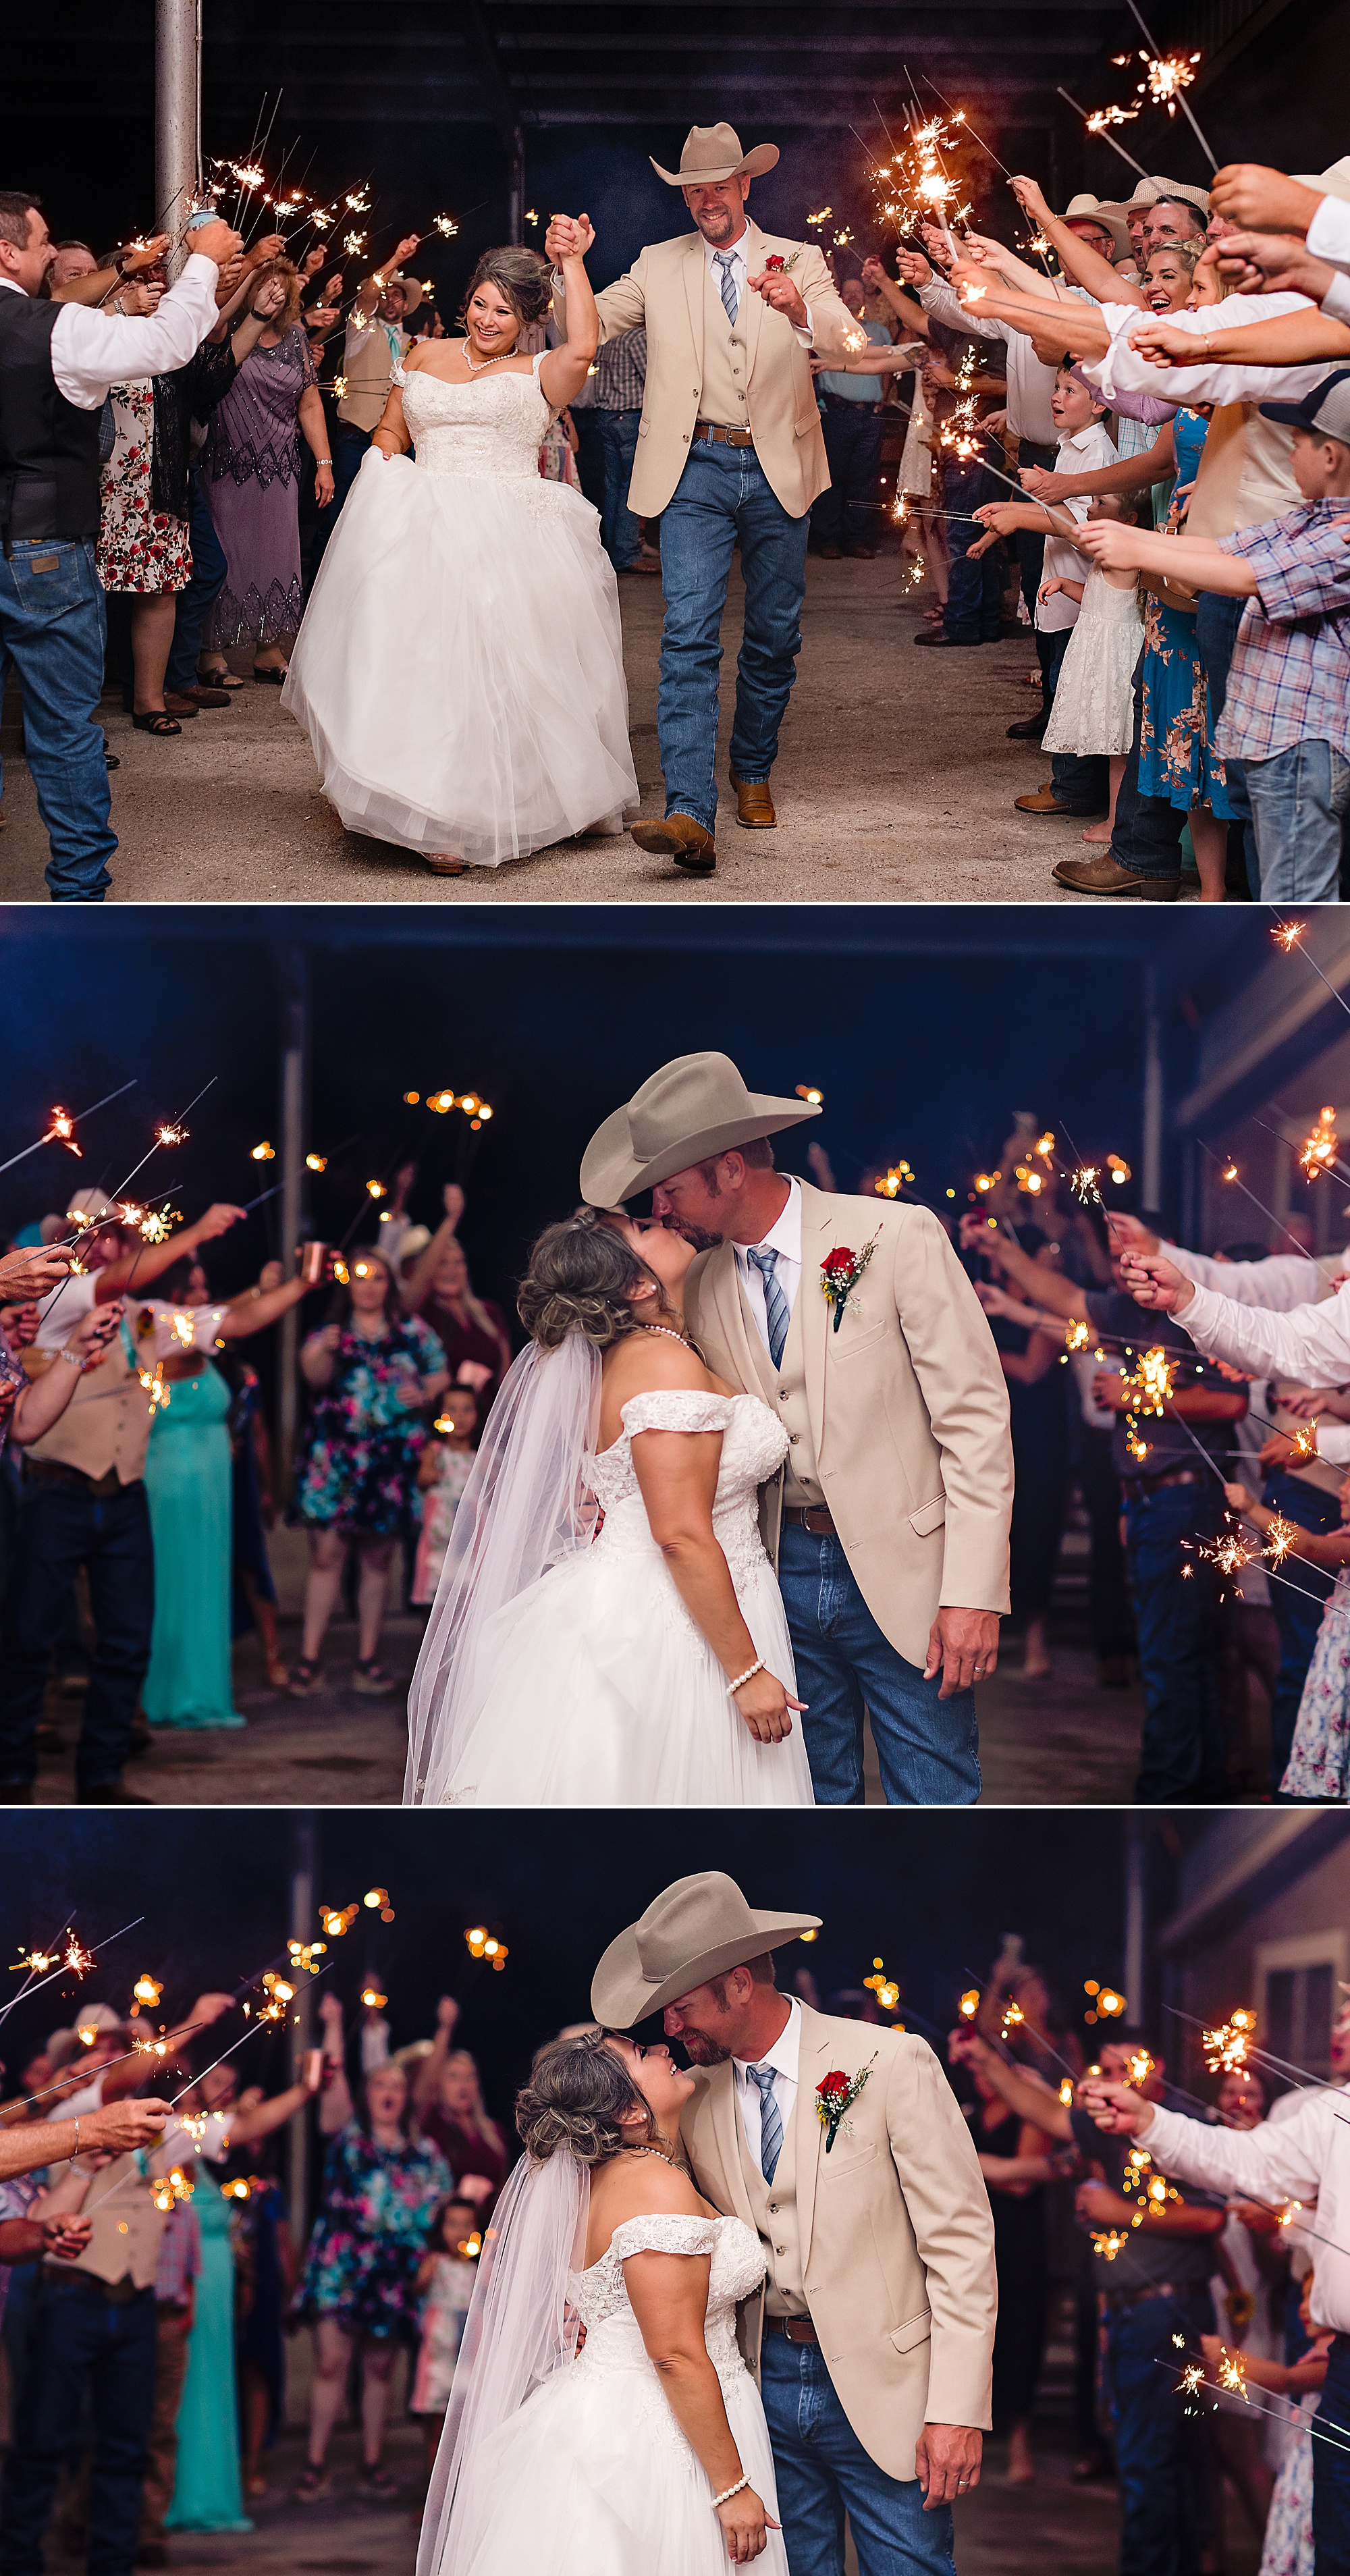 Wedding-Photographer-Rustic-Sunflower-theme-Texas-Carly-Barton-Photography_0100.jpg